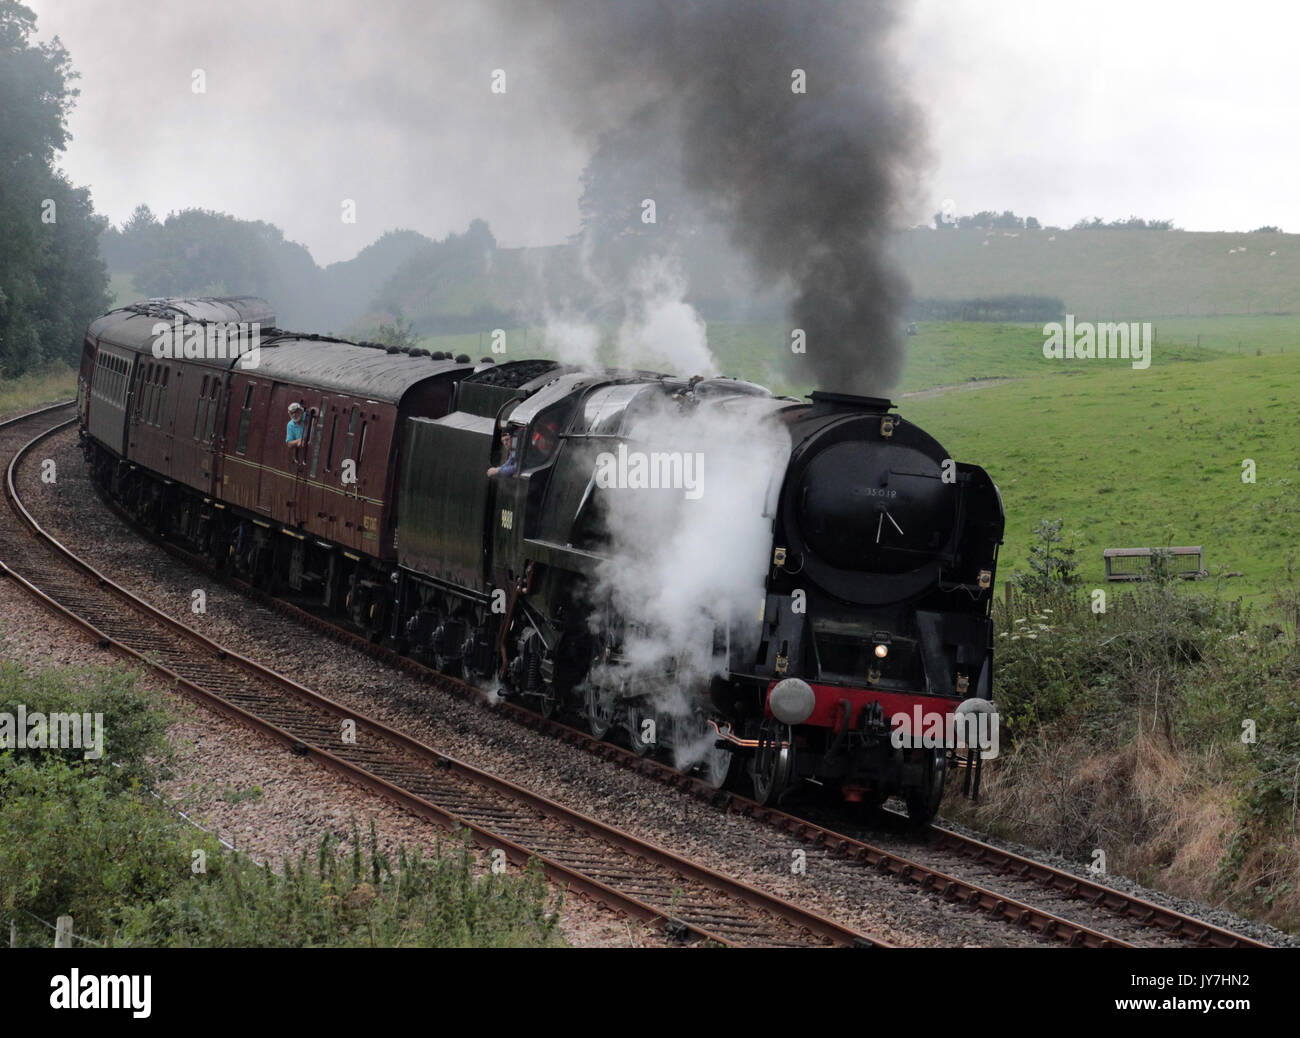 Merchant Navy class preserved steam locomotive British India Line, number 35018, on a loaded test run from Carnforth in the countryside near Borwick. - Stock Image